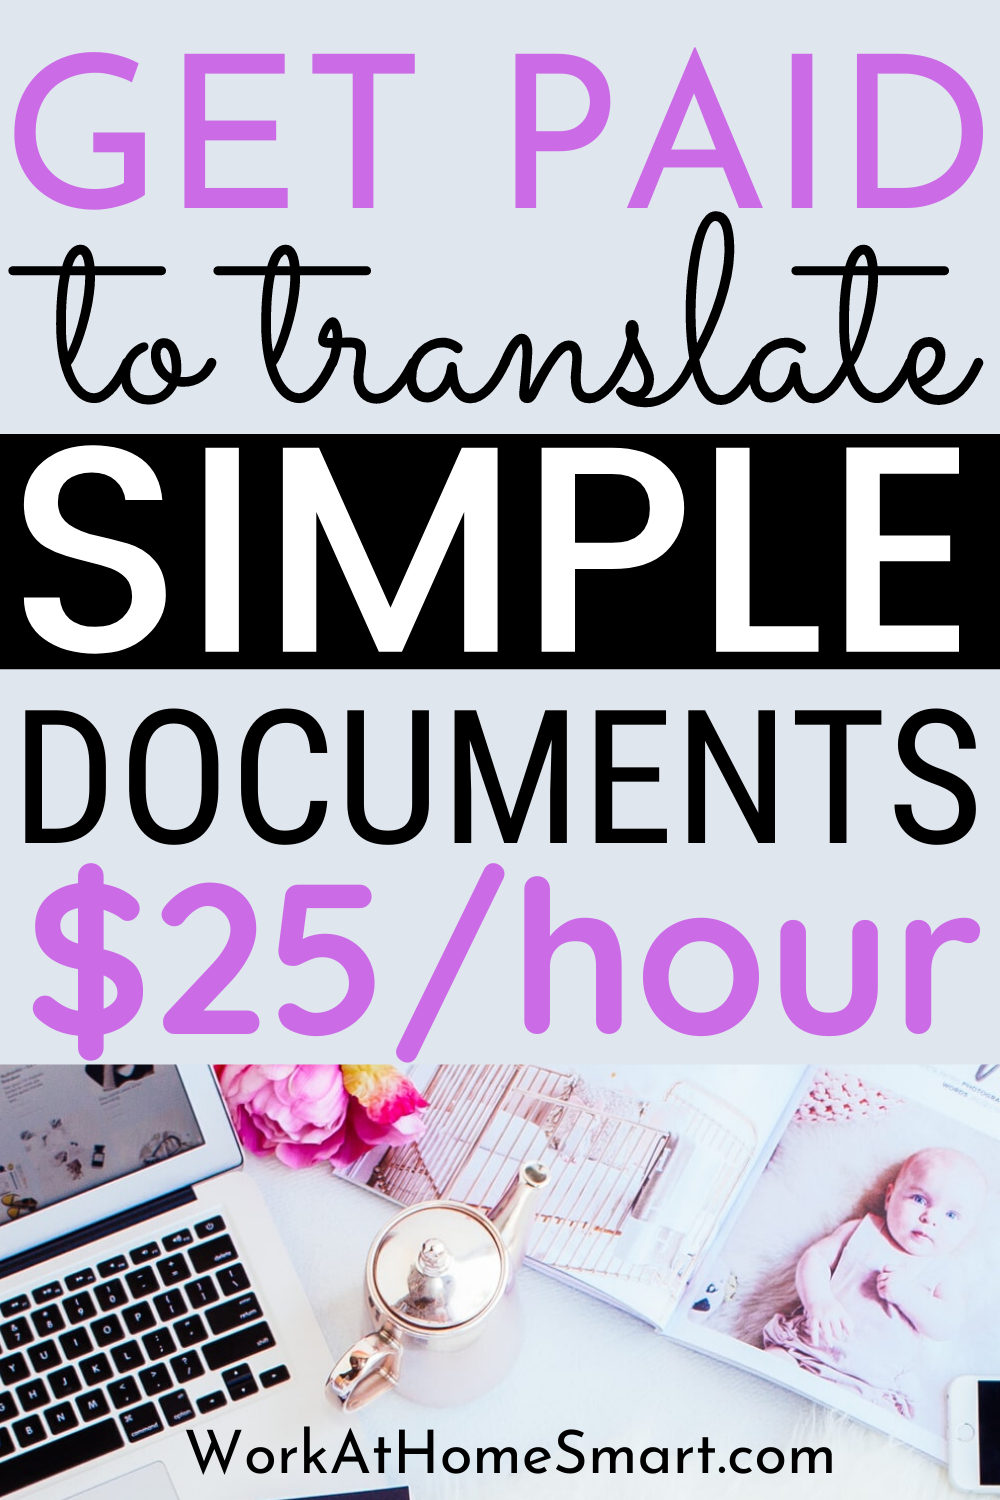 7e07f34e61960fd663075178c99fdd2b - Get Paid To Translate Simple Documents From Your Home ($25/hr) - work-from-home